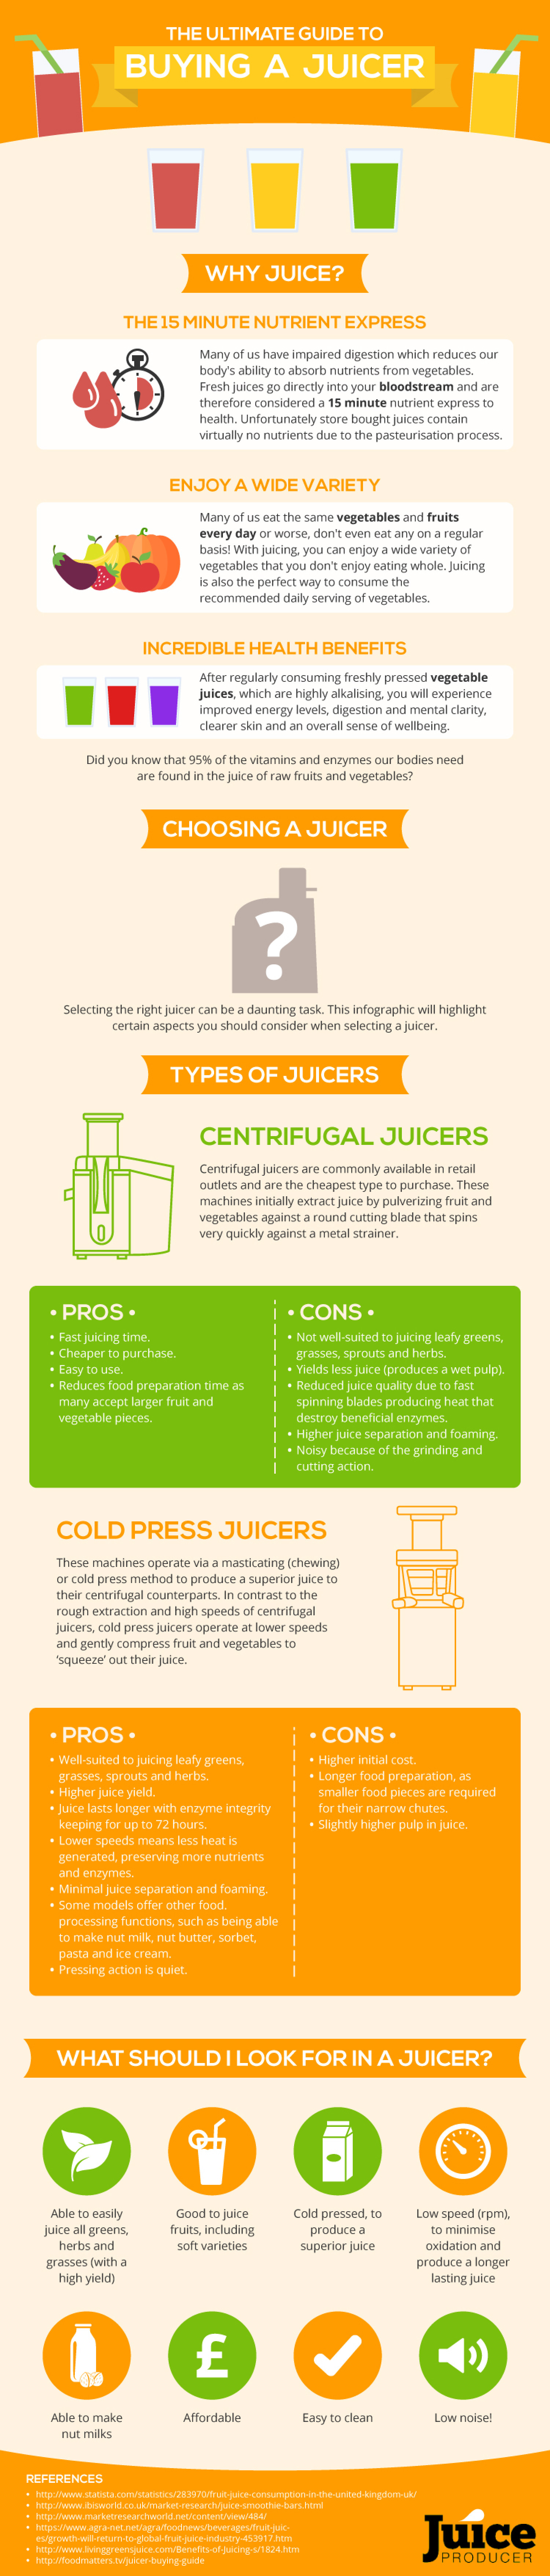 Juiceproducer's guide to buying a juicer Infographic